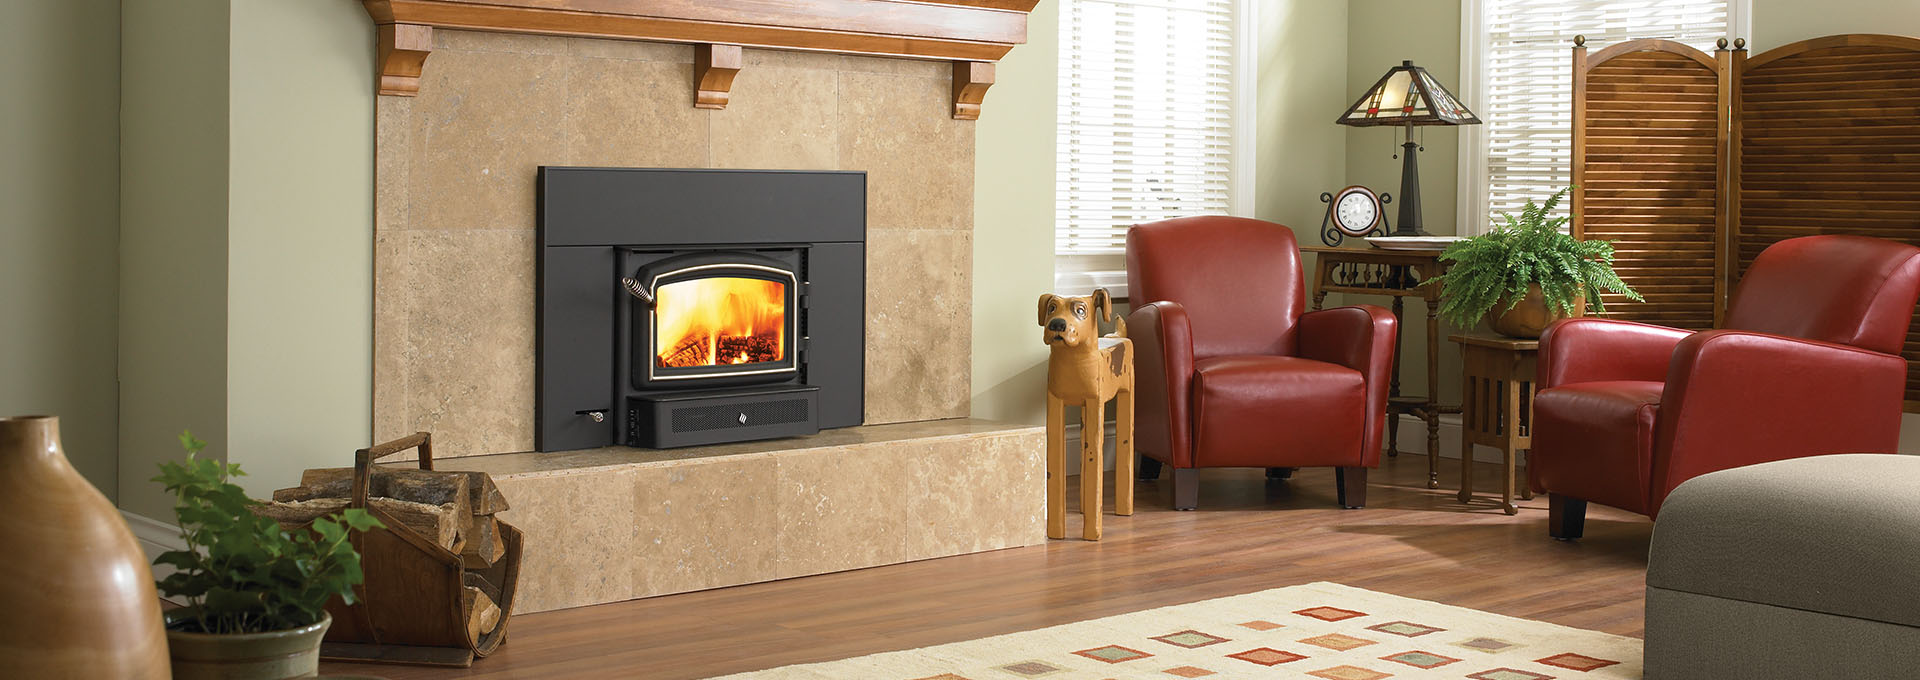 i1200 wood fireplace insert regency fireplace products